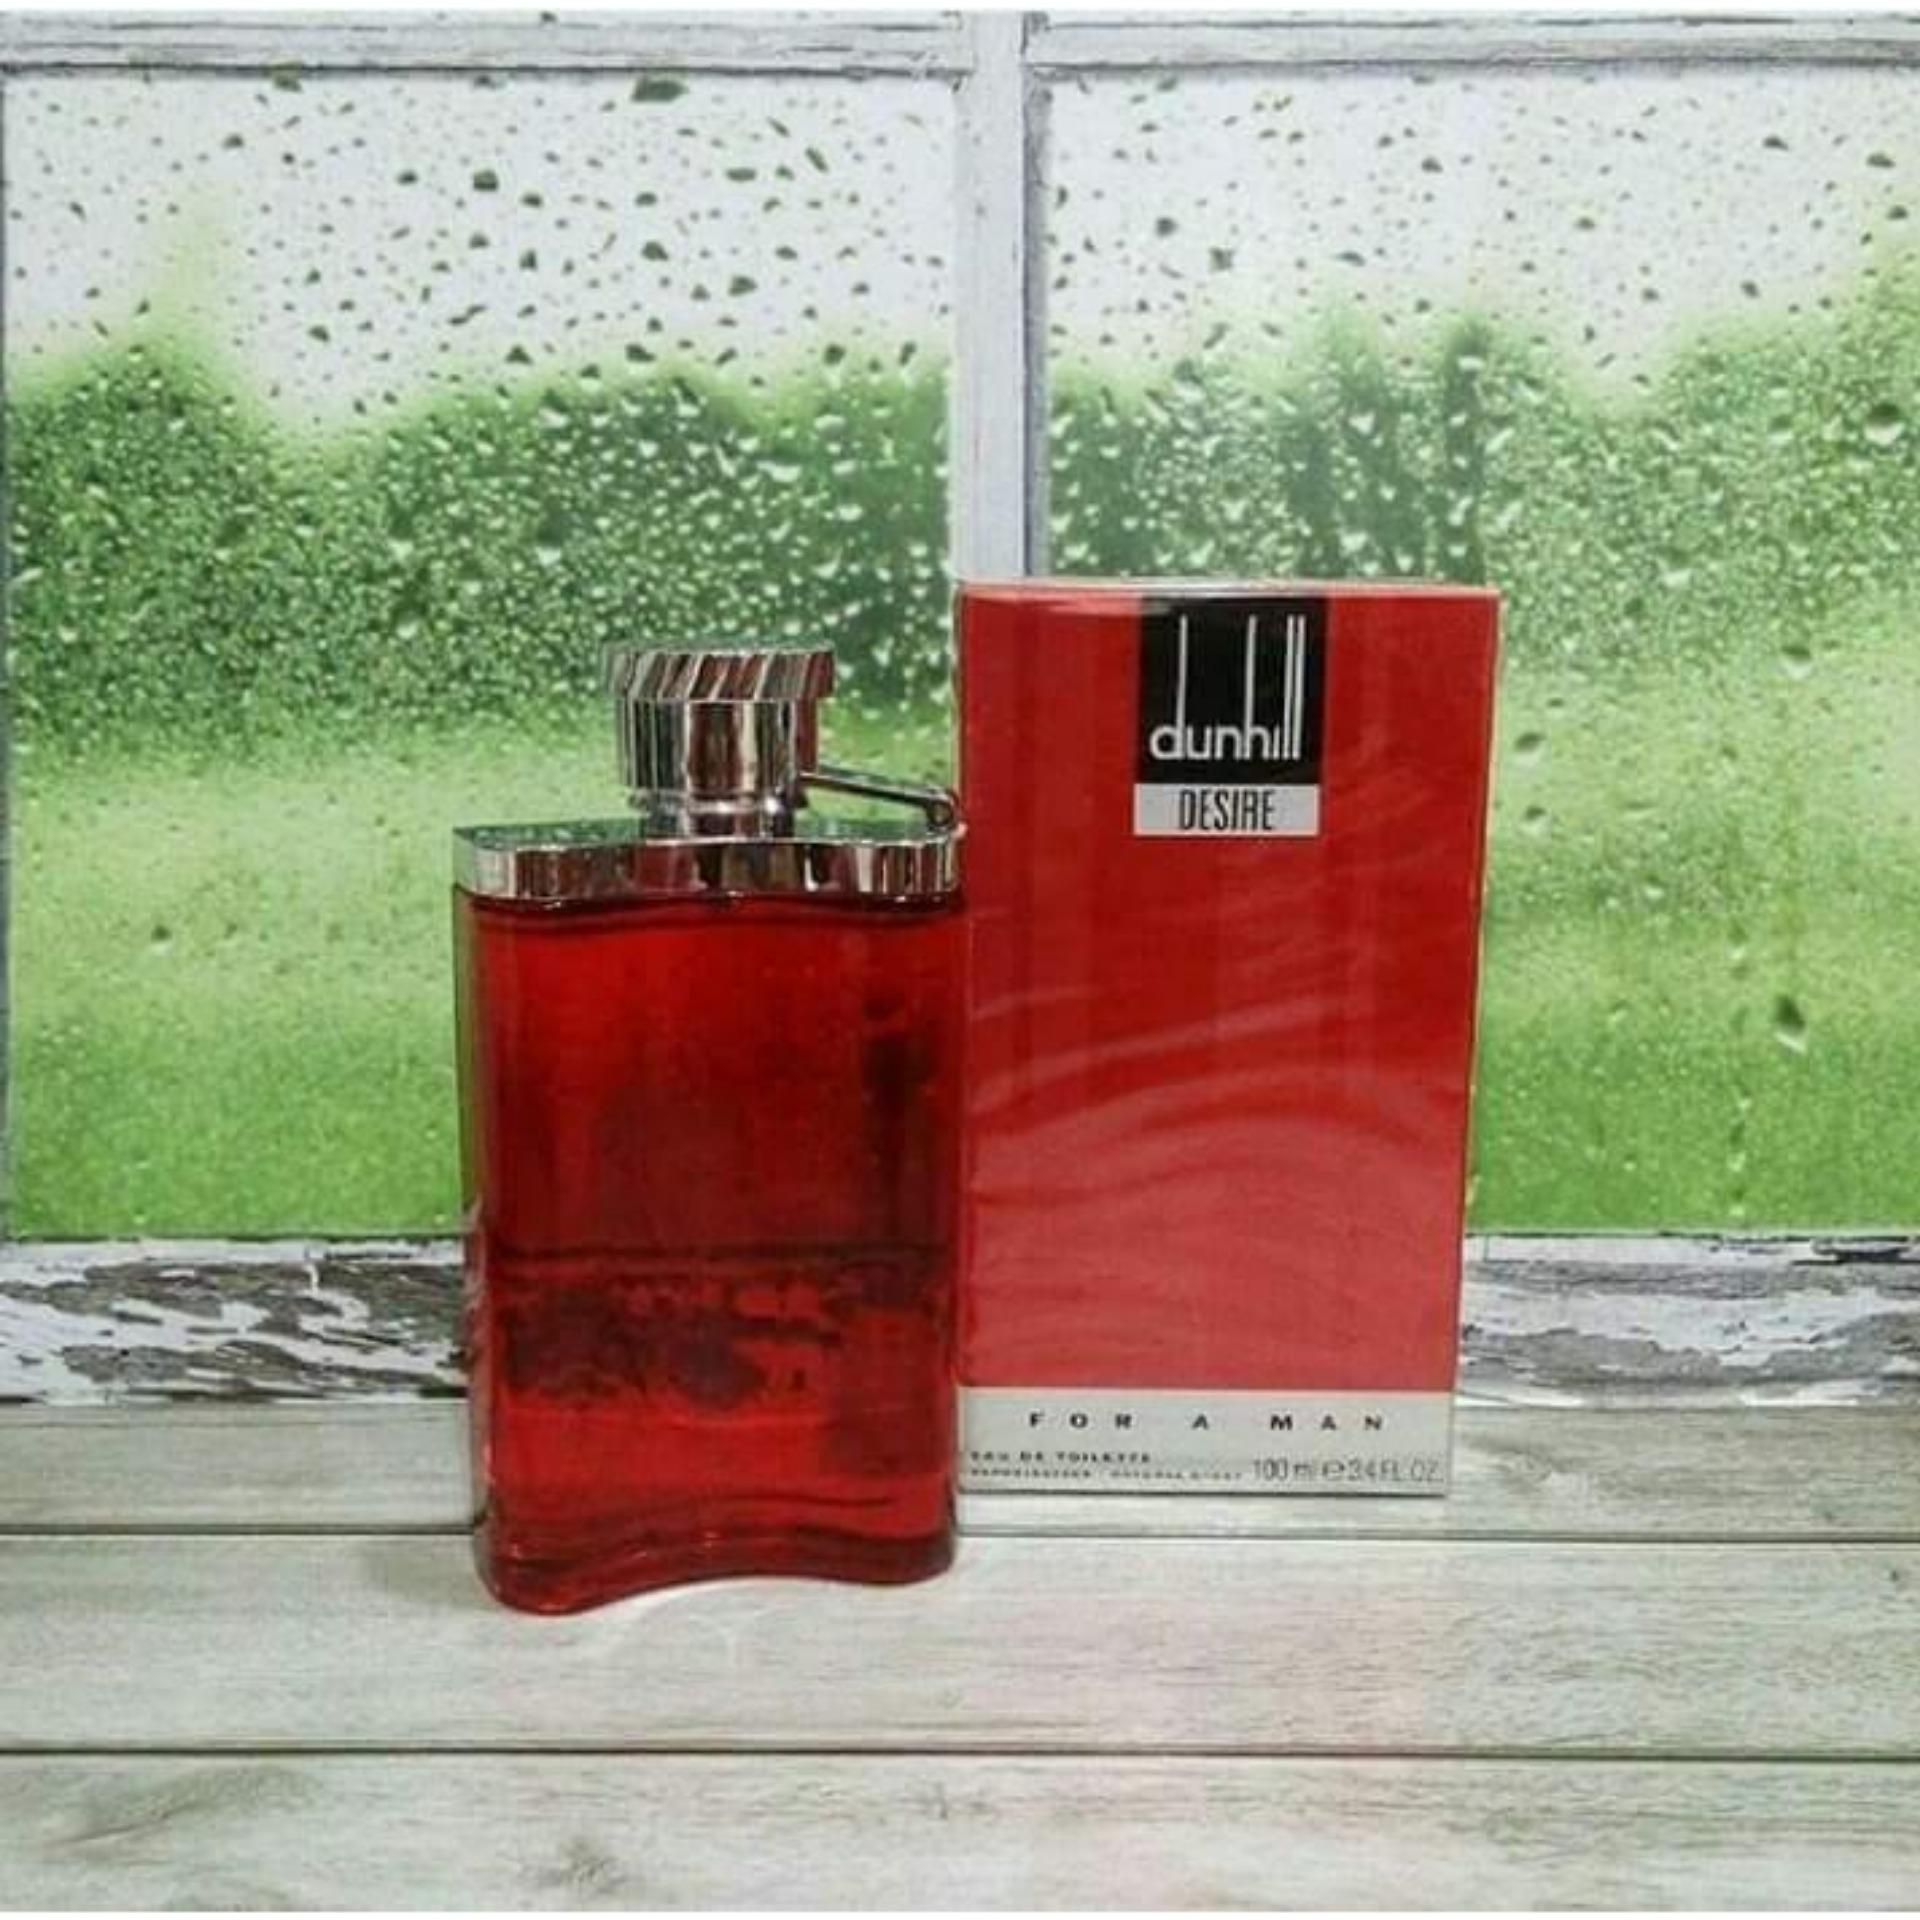 PARFUM PRIA/TERBAIK/TOP MODE/DUNHIL DESIRE RED FOR MEN